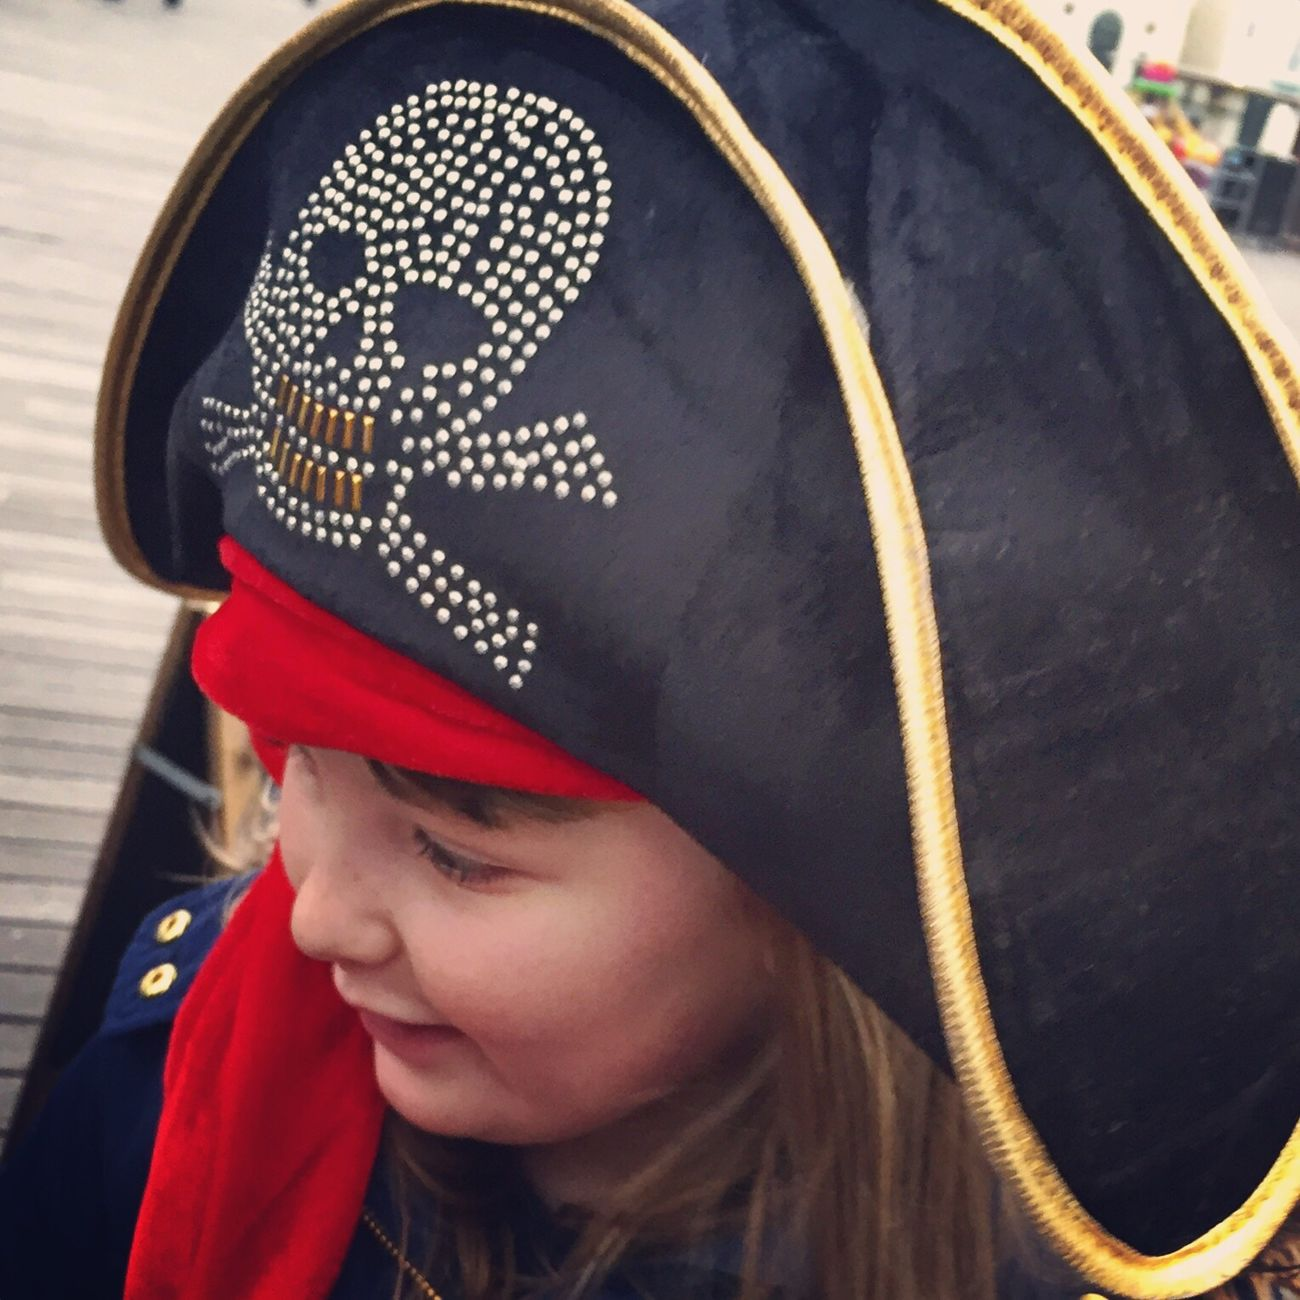 My little pirate captain Real People One Person Childhood Close-up Headshot Smiling Day Pier Pirate Love